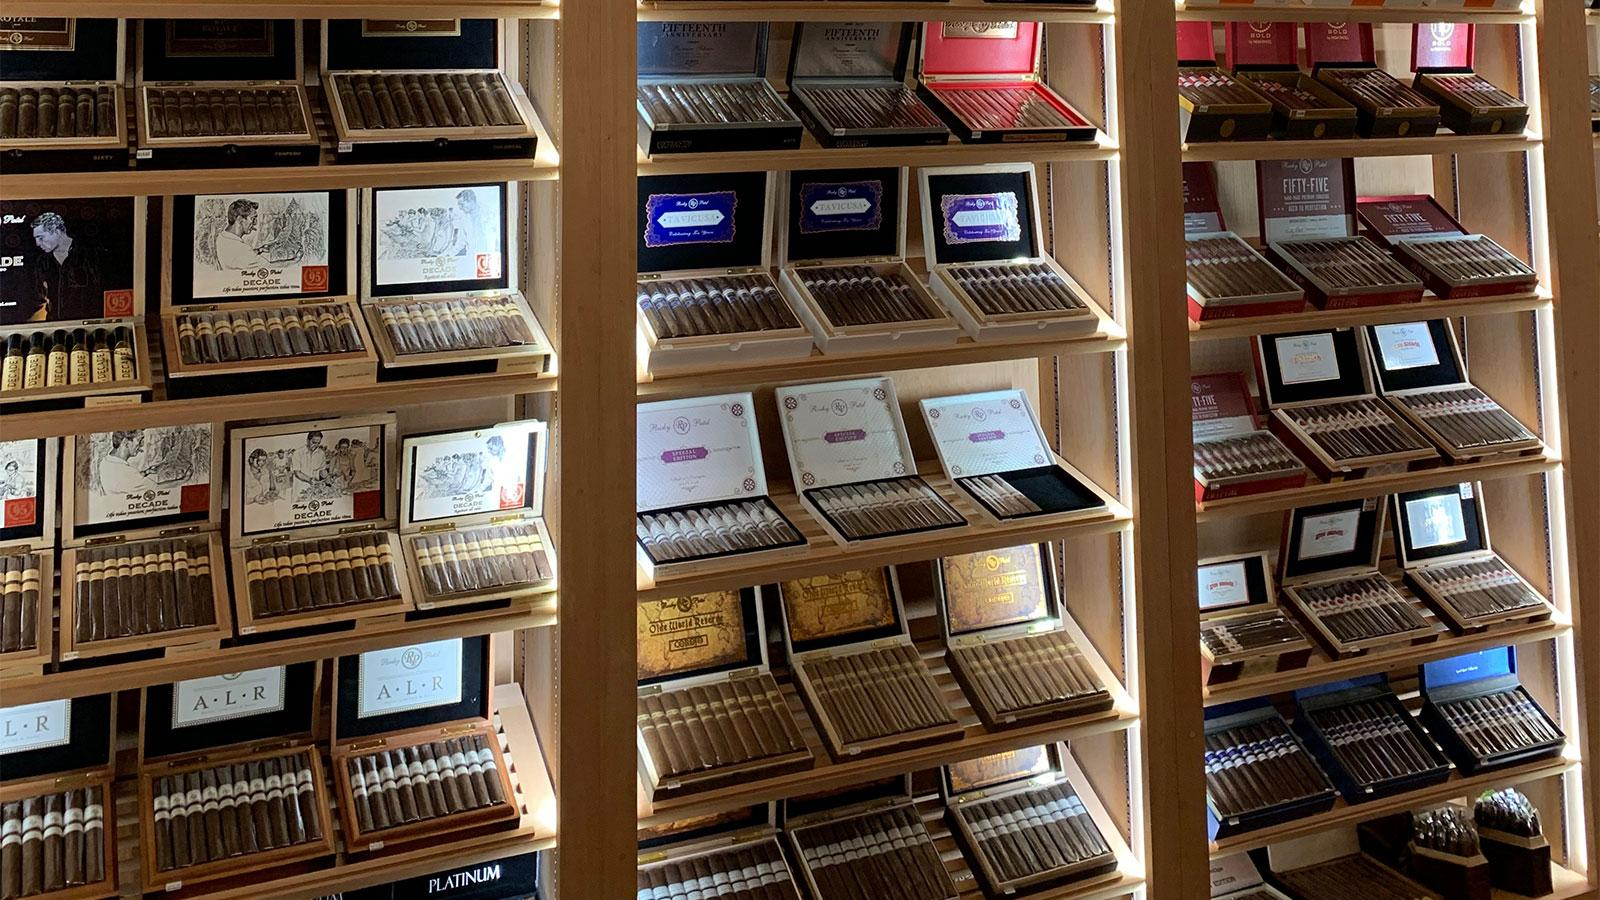 The humidor at Burn carries a large variety of Rocky Patel cigars